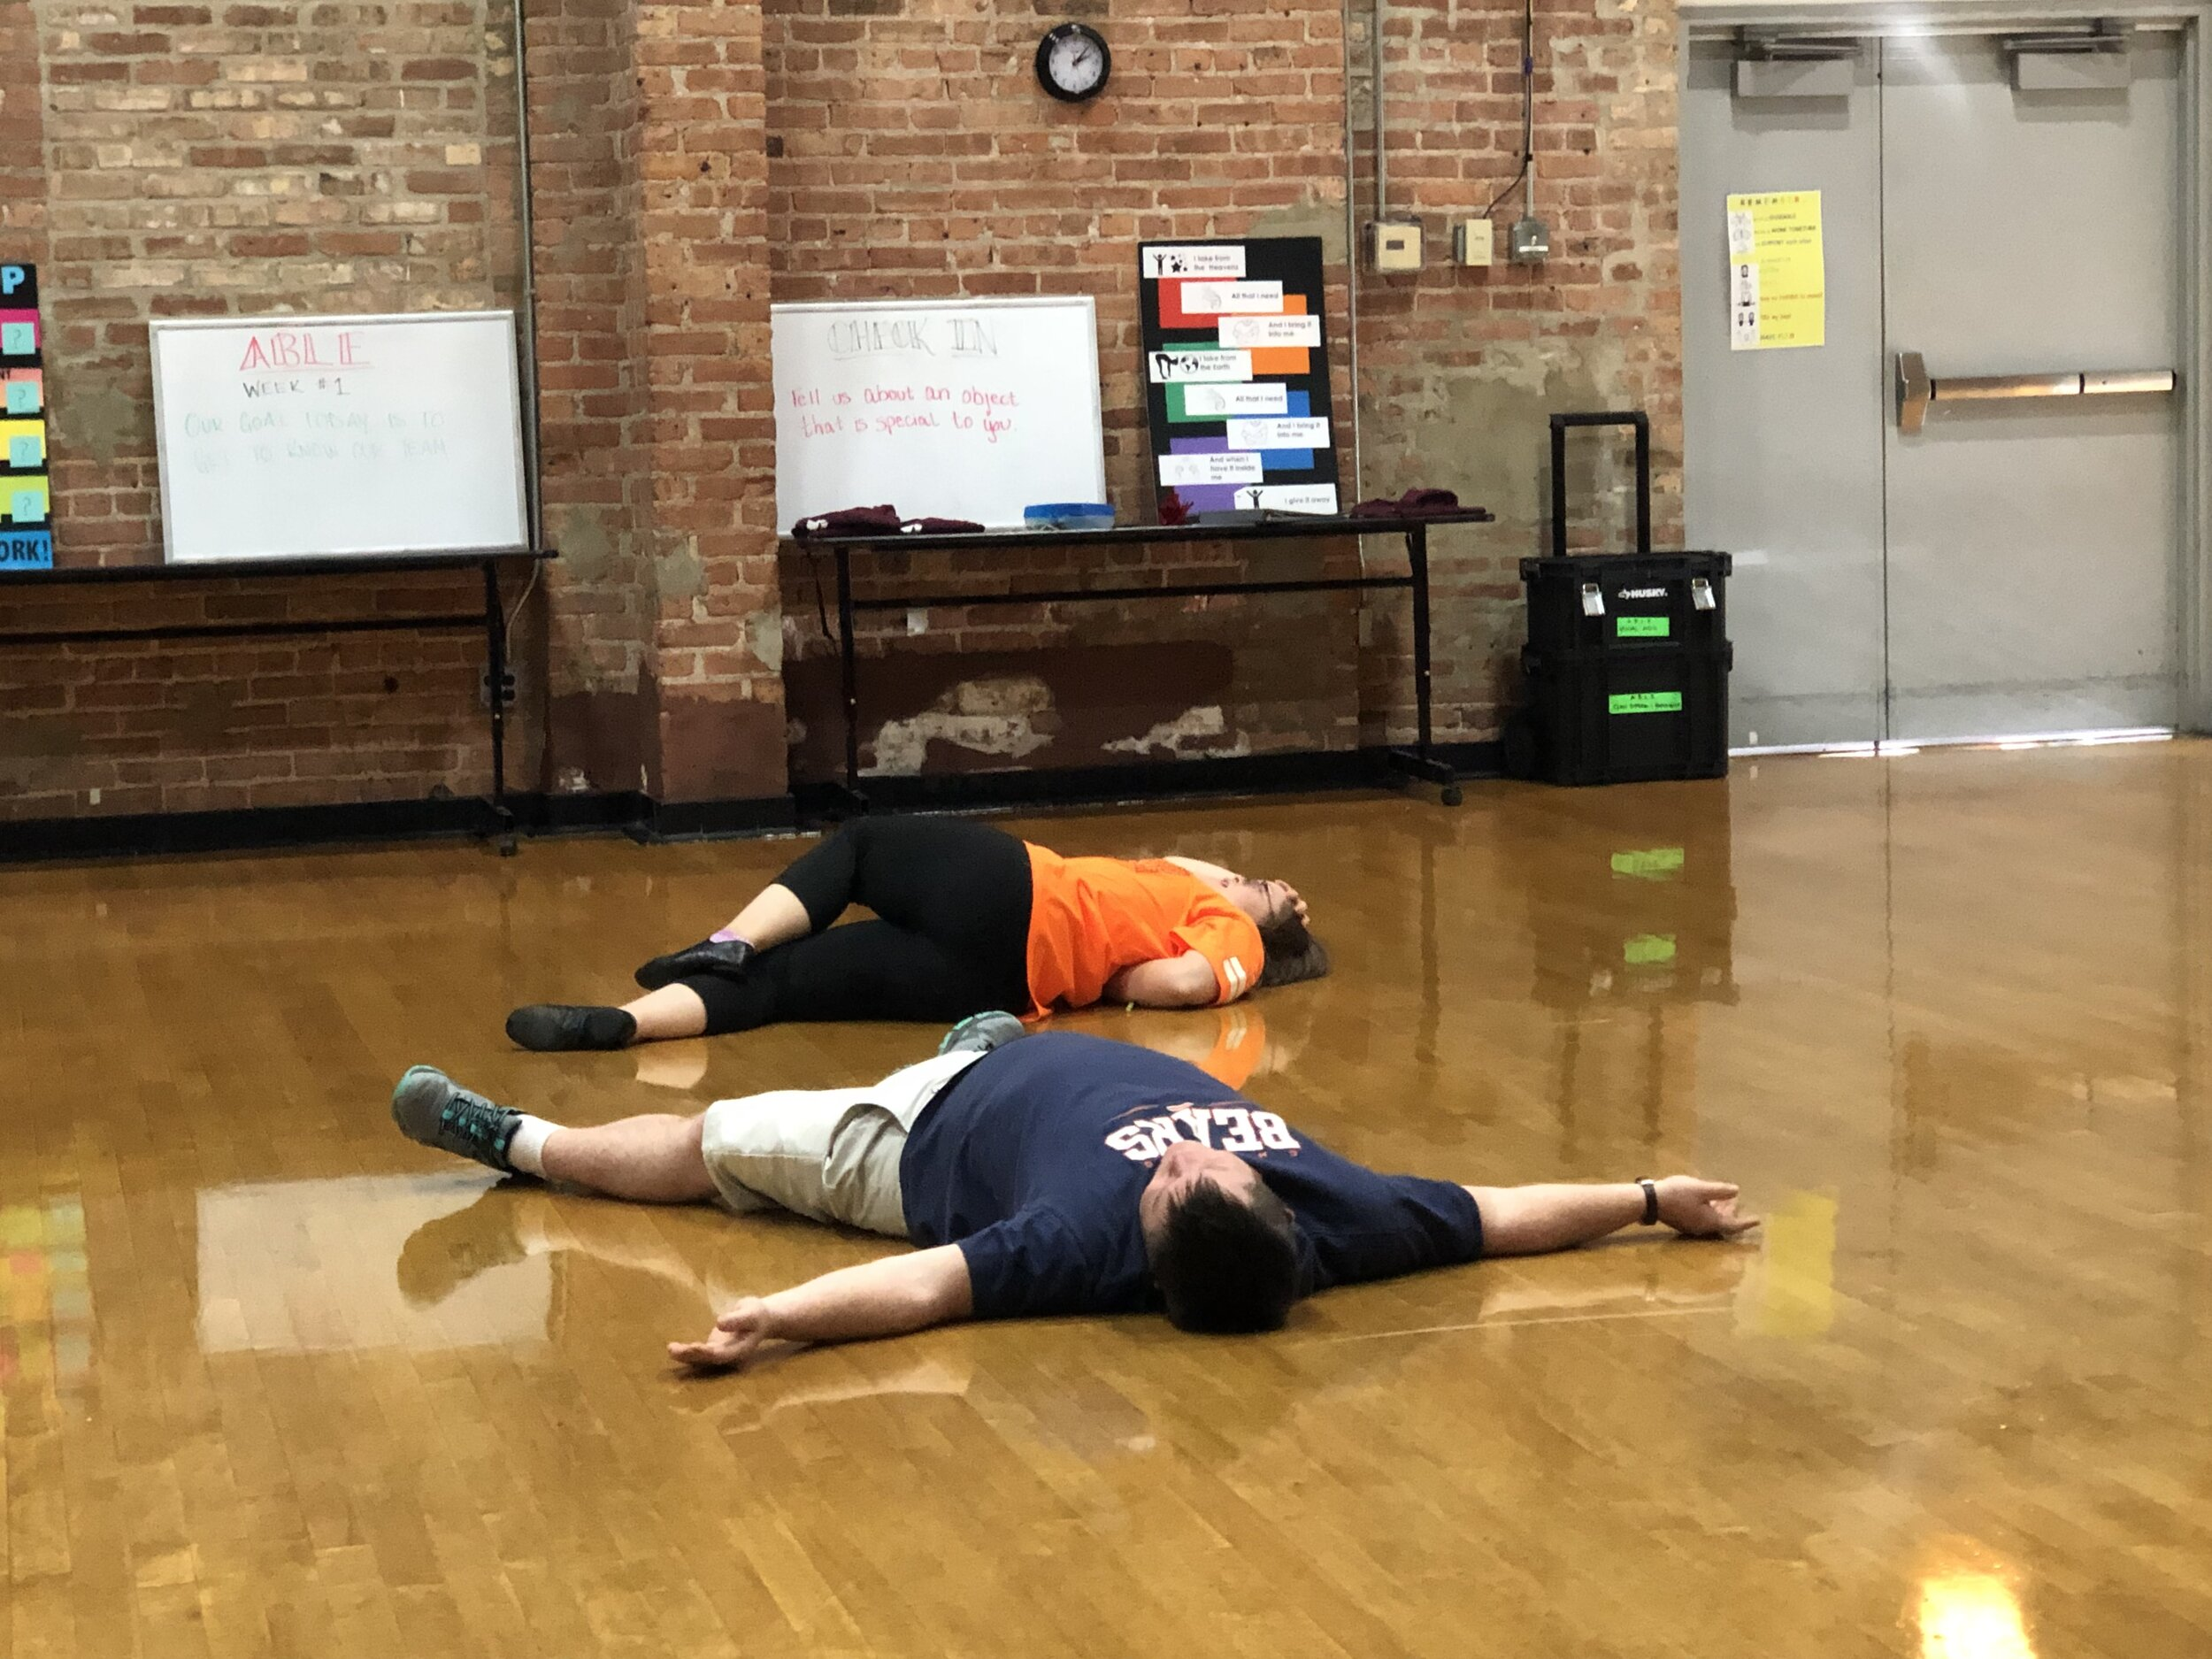 Emily and Matthew lay on the floor after a failed swimming attempt in their scene